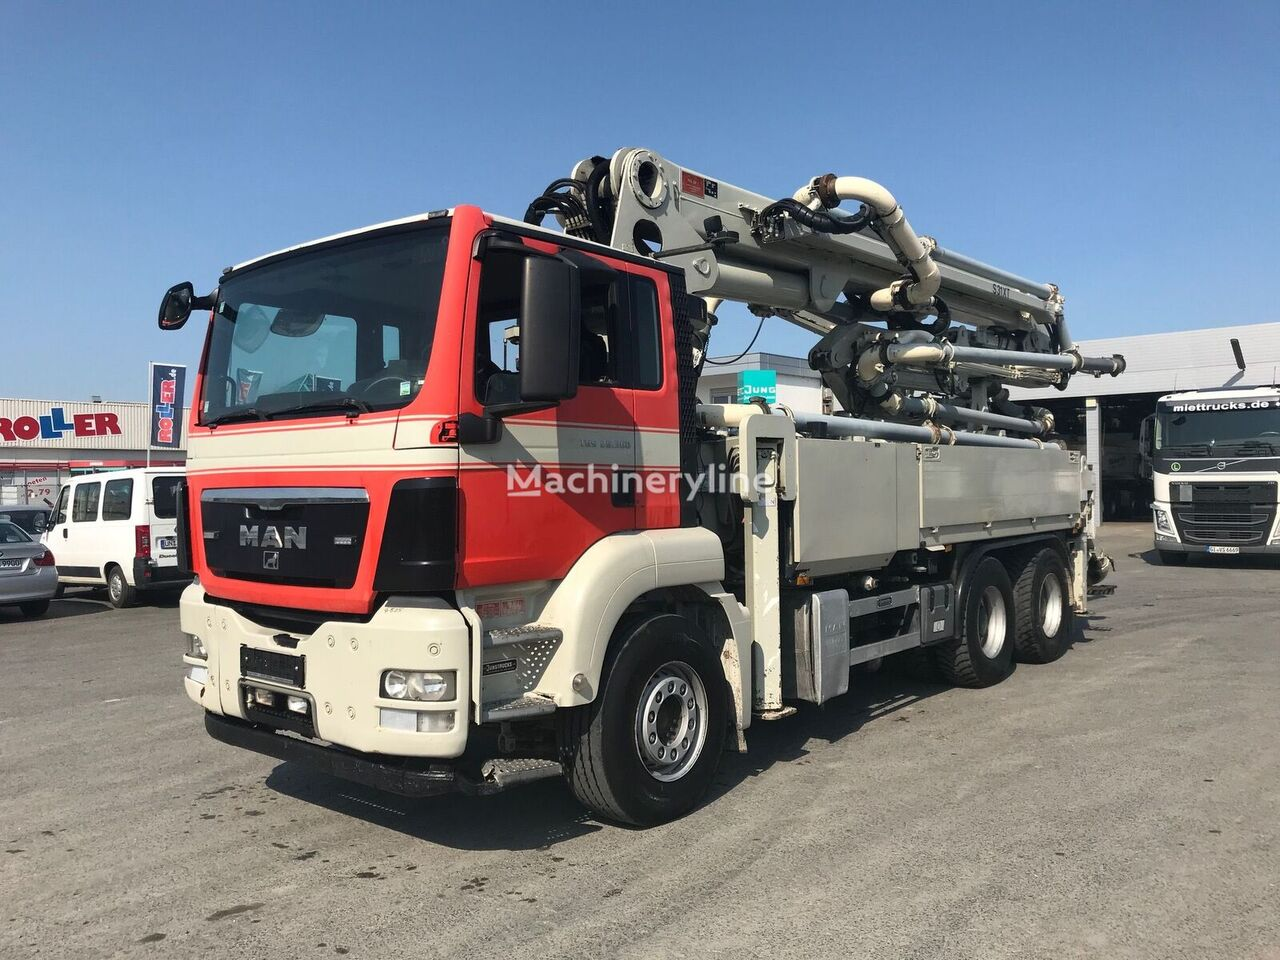 Schwing S31XT  on chassis MAN TGS 26.360  concrete pump